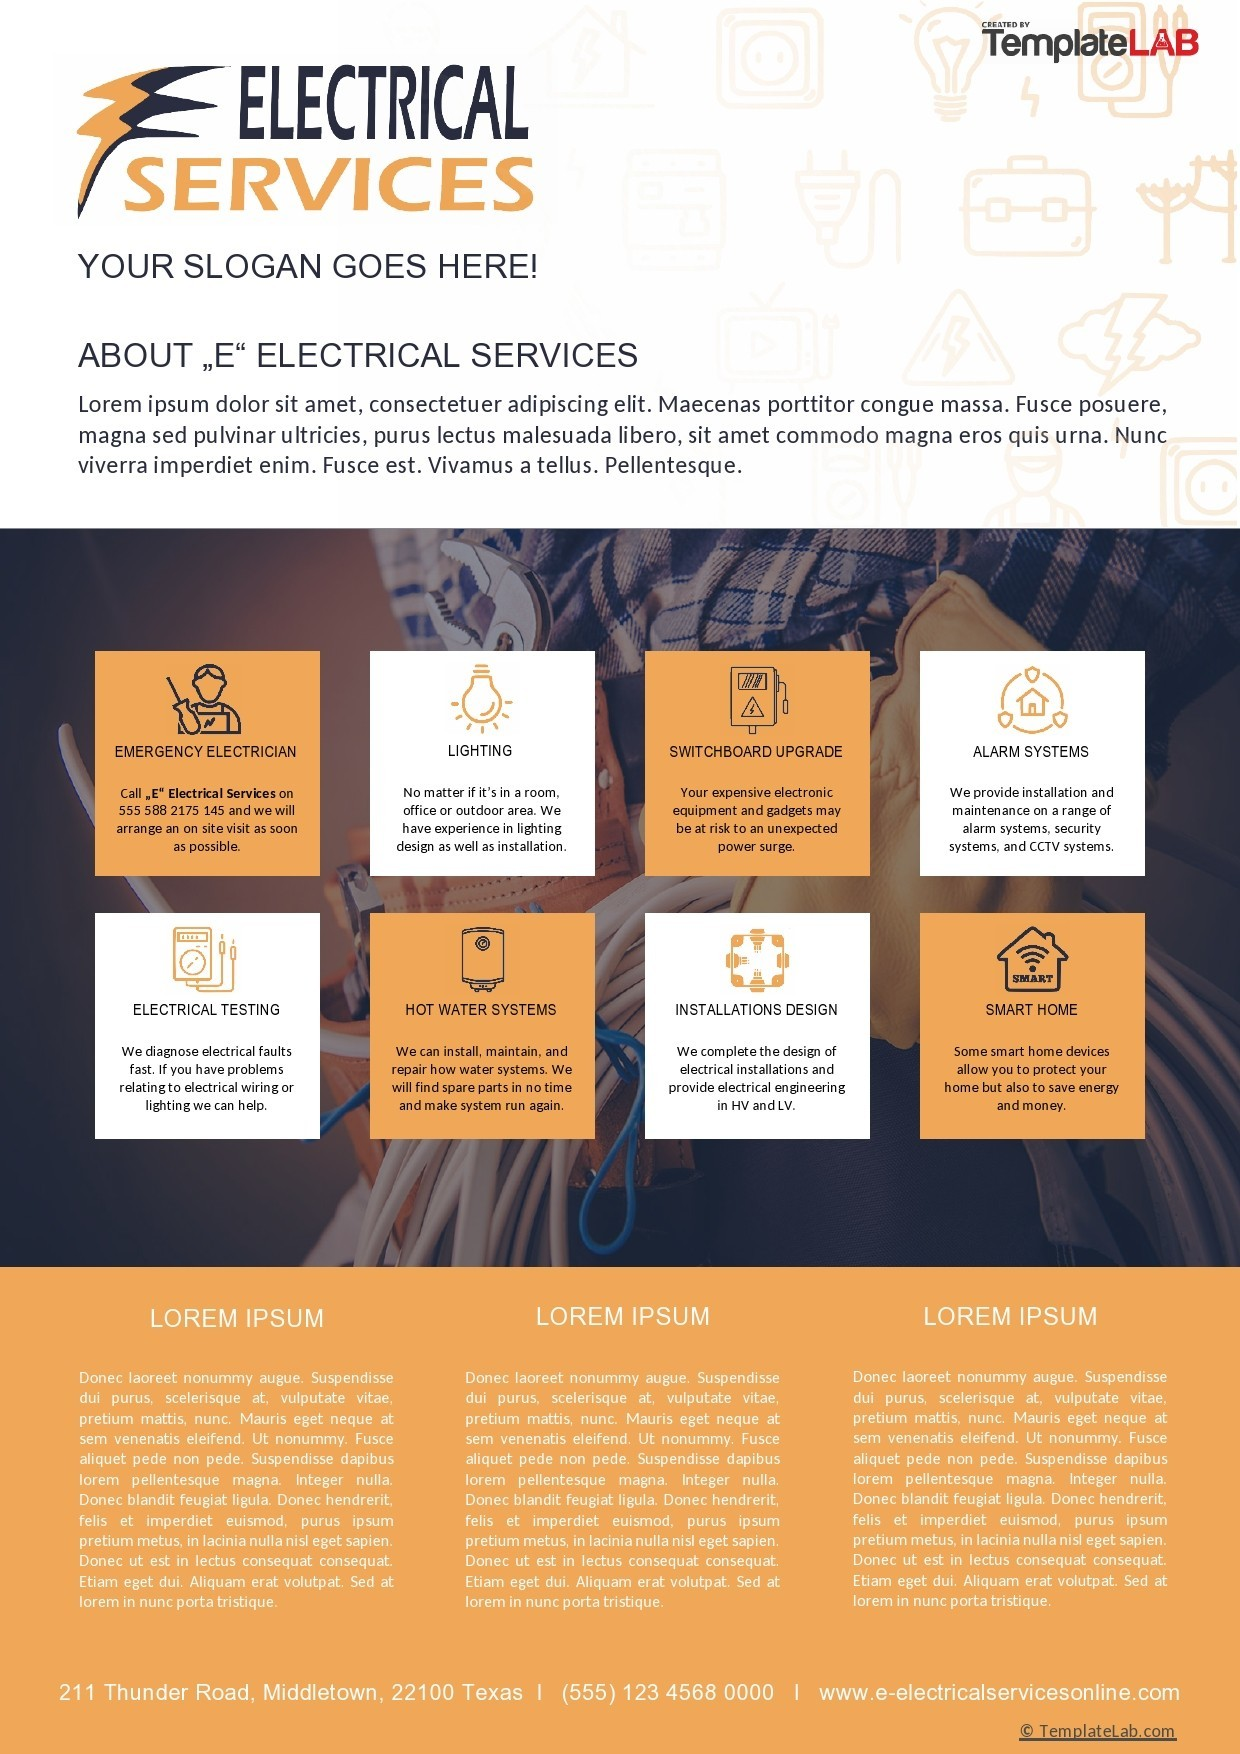 Free Electrical Services Company Profile Template - TemplateLab.com